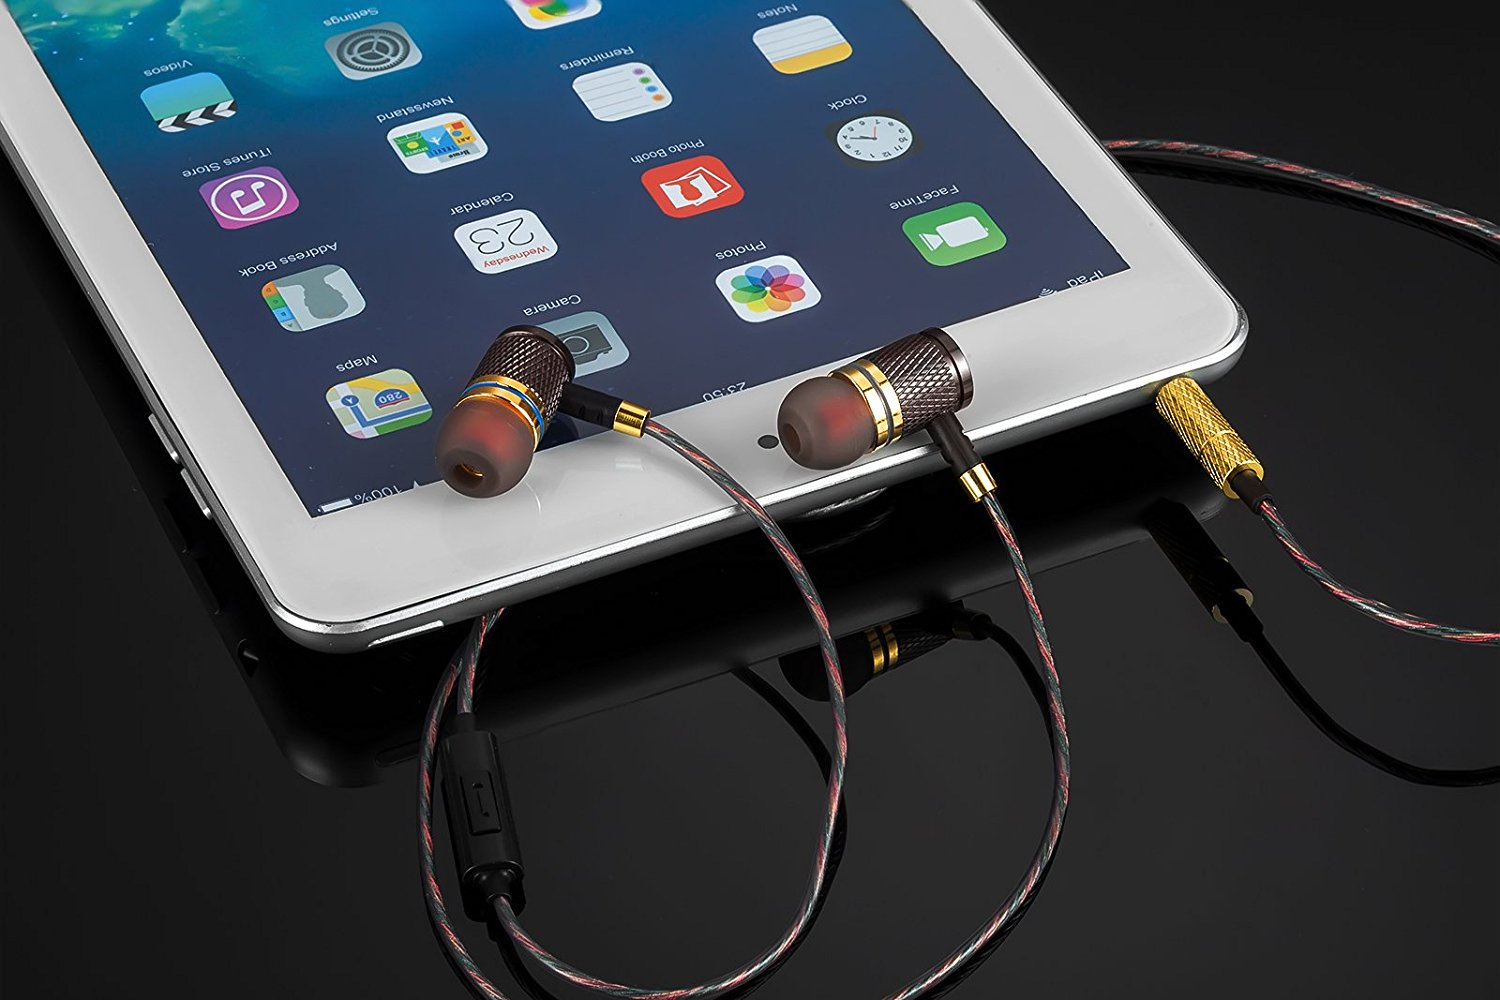 Headphones, Earbuds, High Definition, in-Ear, Noise Isolating, Heavy Deep Bass for iPhone, iPod, iPad, MP3 Players, Samsung Galaxy, Nokia, HTC, etc (Gold Without Mic)